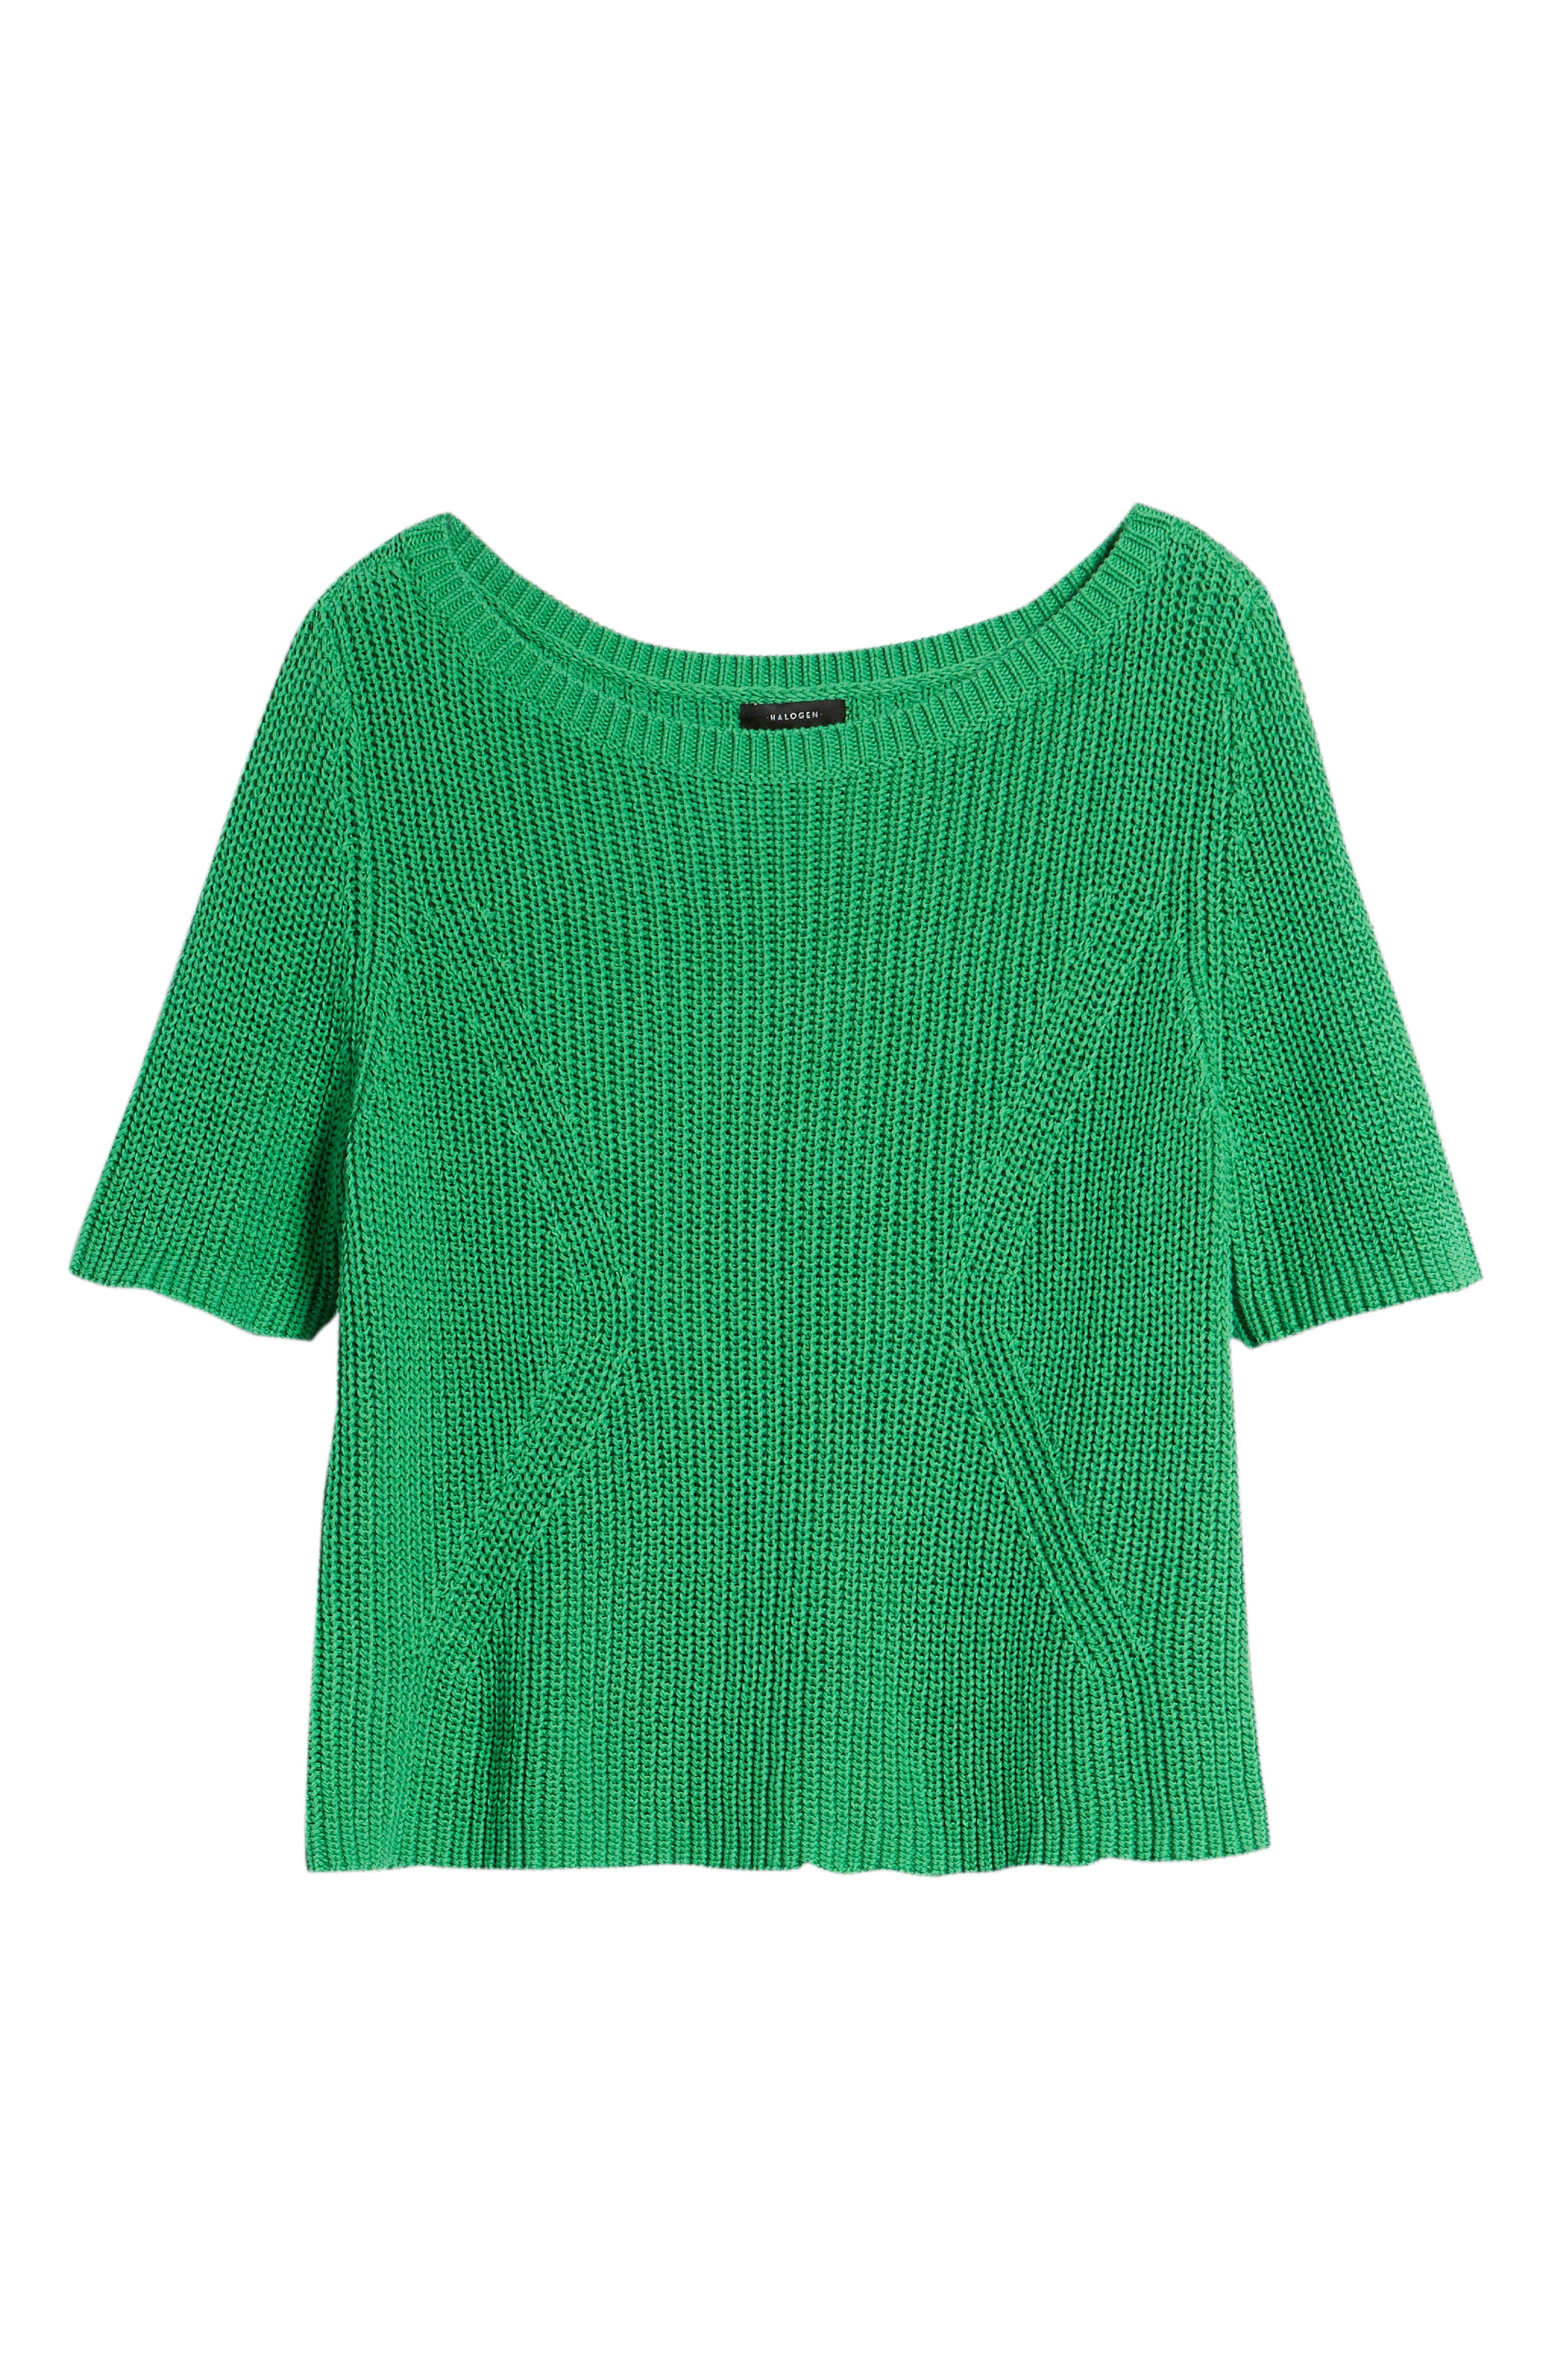 Shaker Stitch Cotton Sweater,                             Alternate thumbnail 6, color,                             330